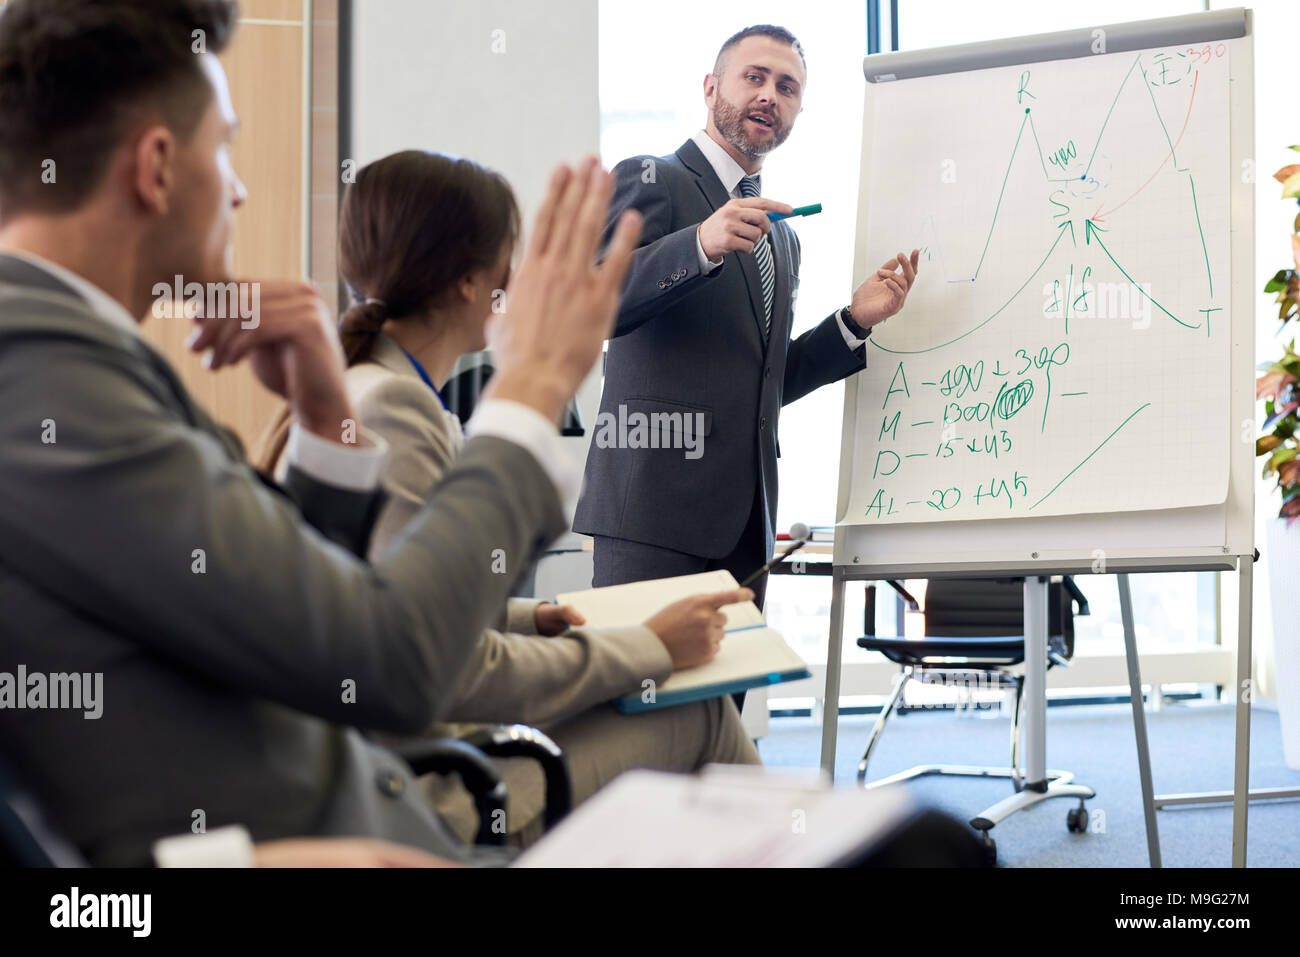 Training Seminar on Business - Stock Image